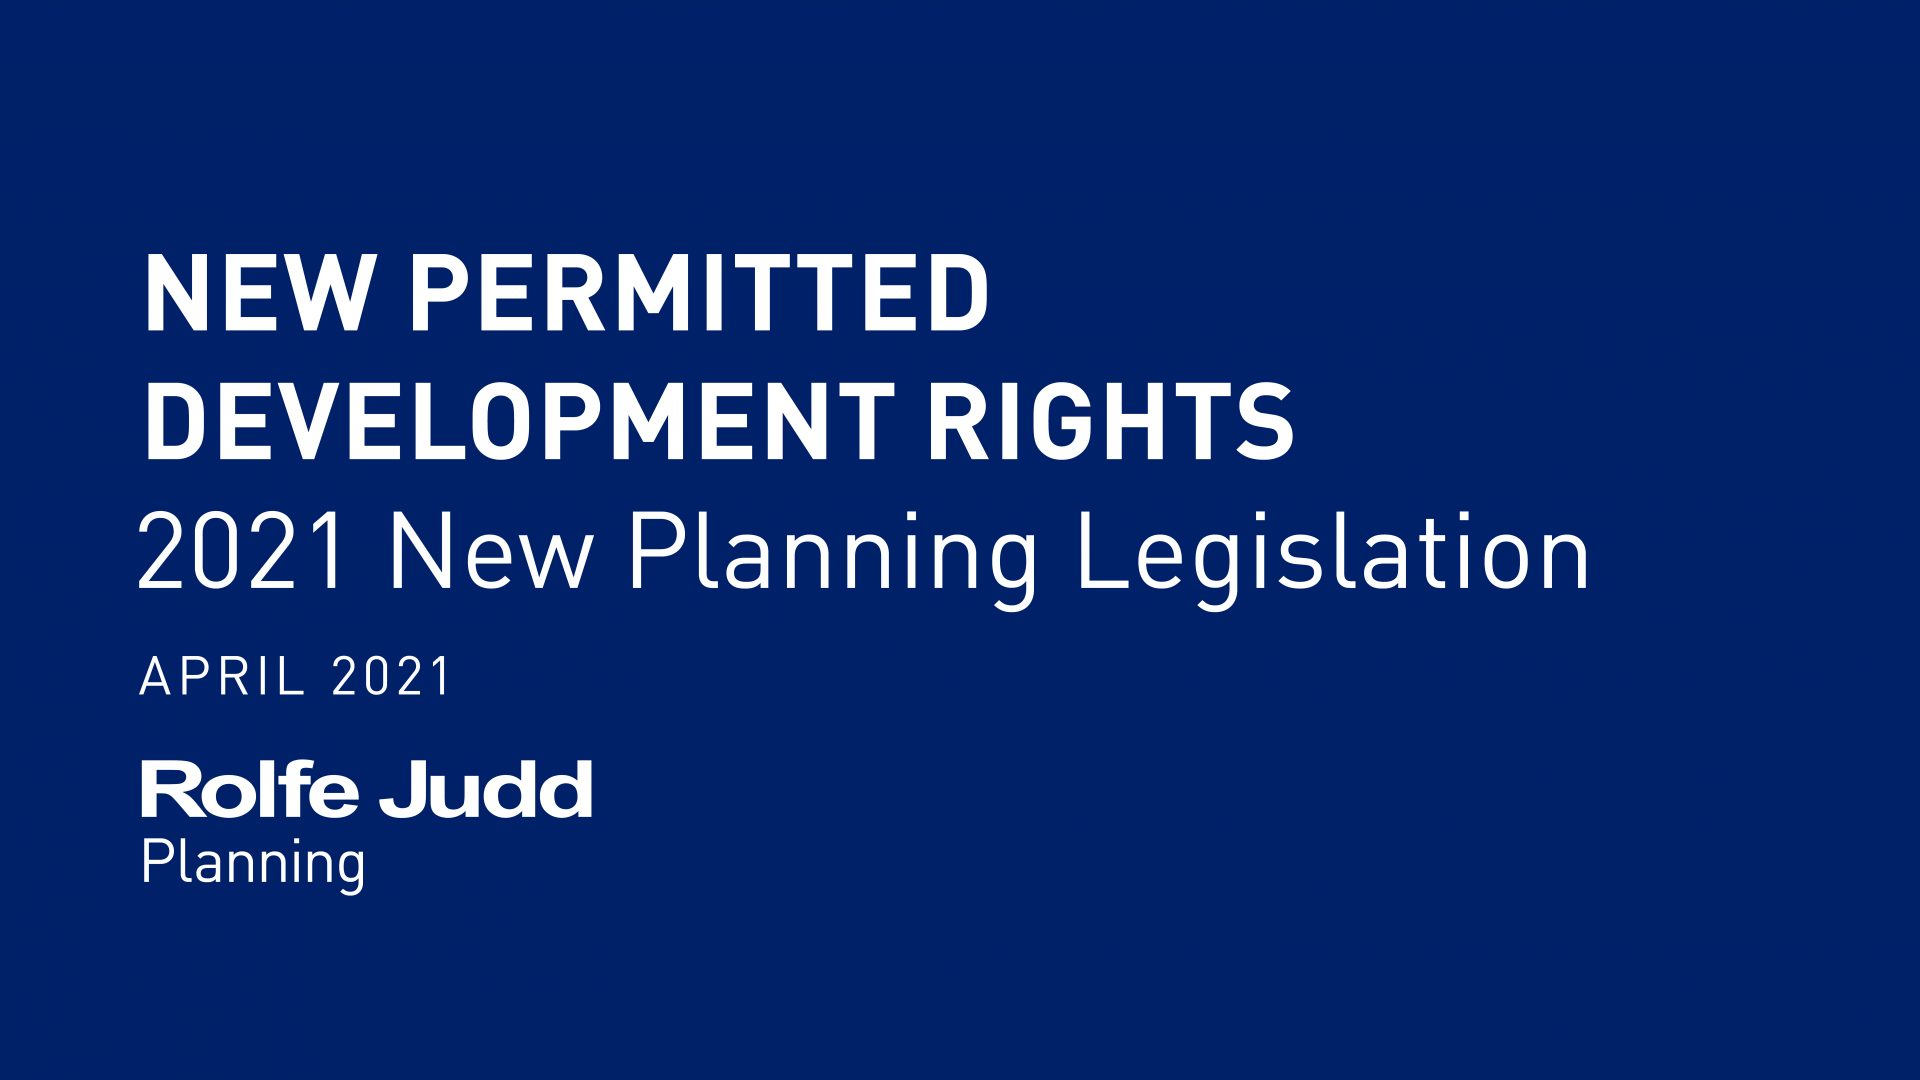 NEW PD rights Planning Note 1280×600 x